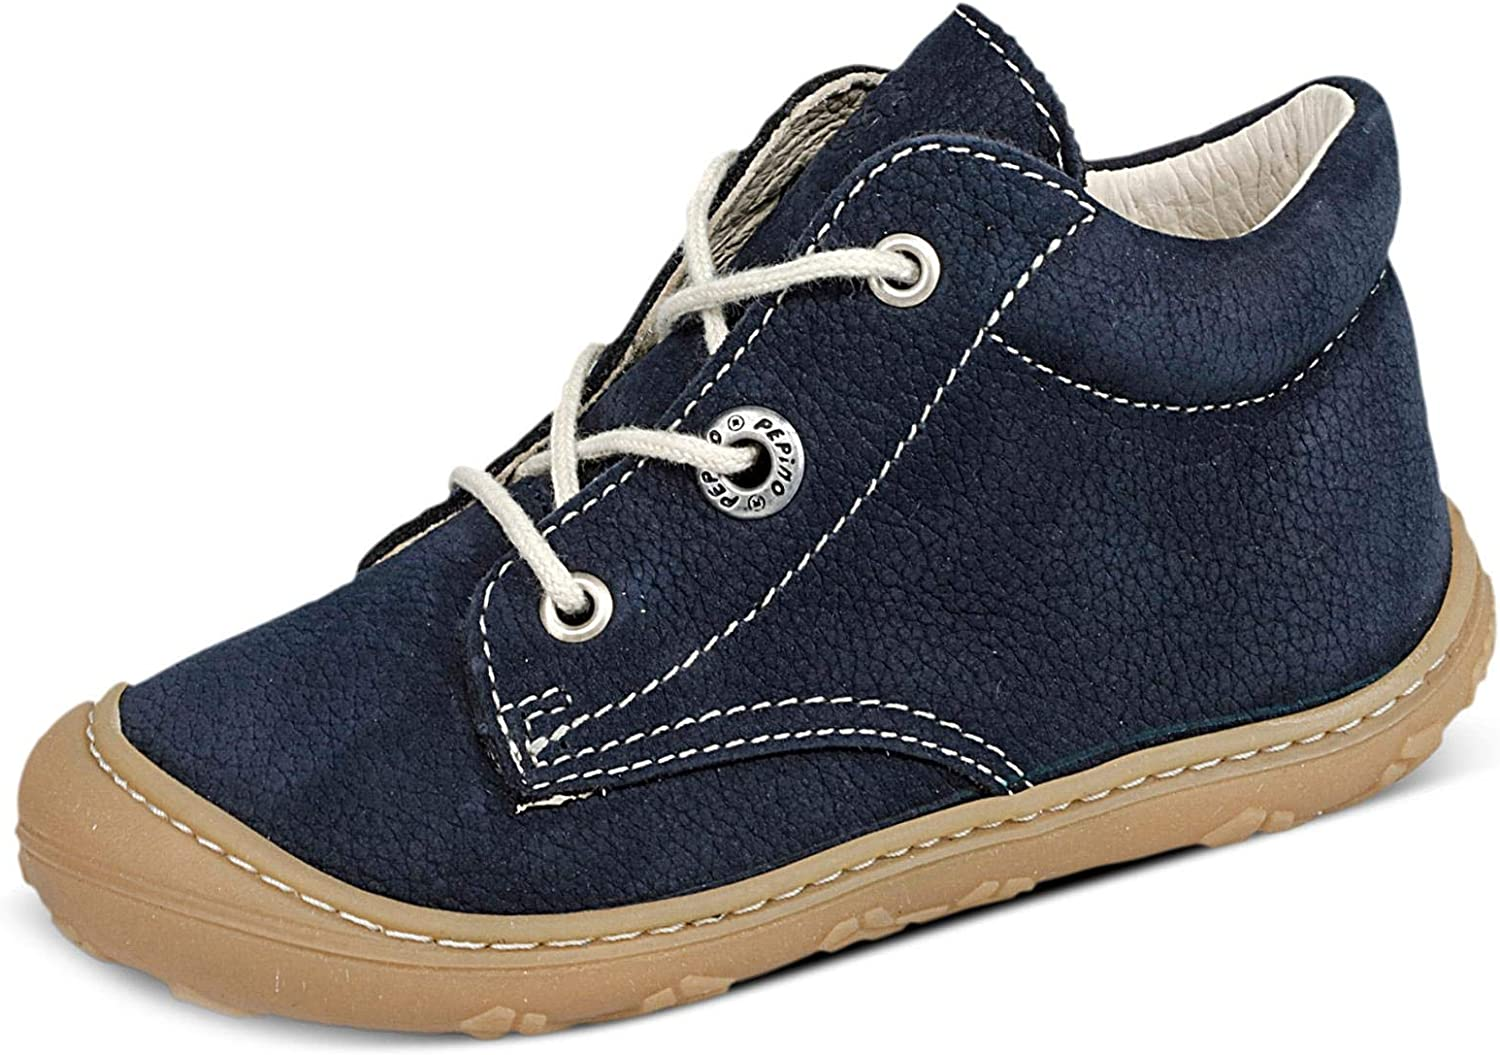 Ricosta Lowest price challenge Pepino Cory Colorado Springs Mall See Barbados Ankle Infant Boots